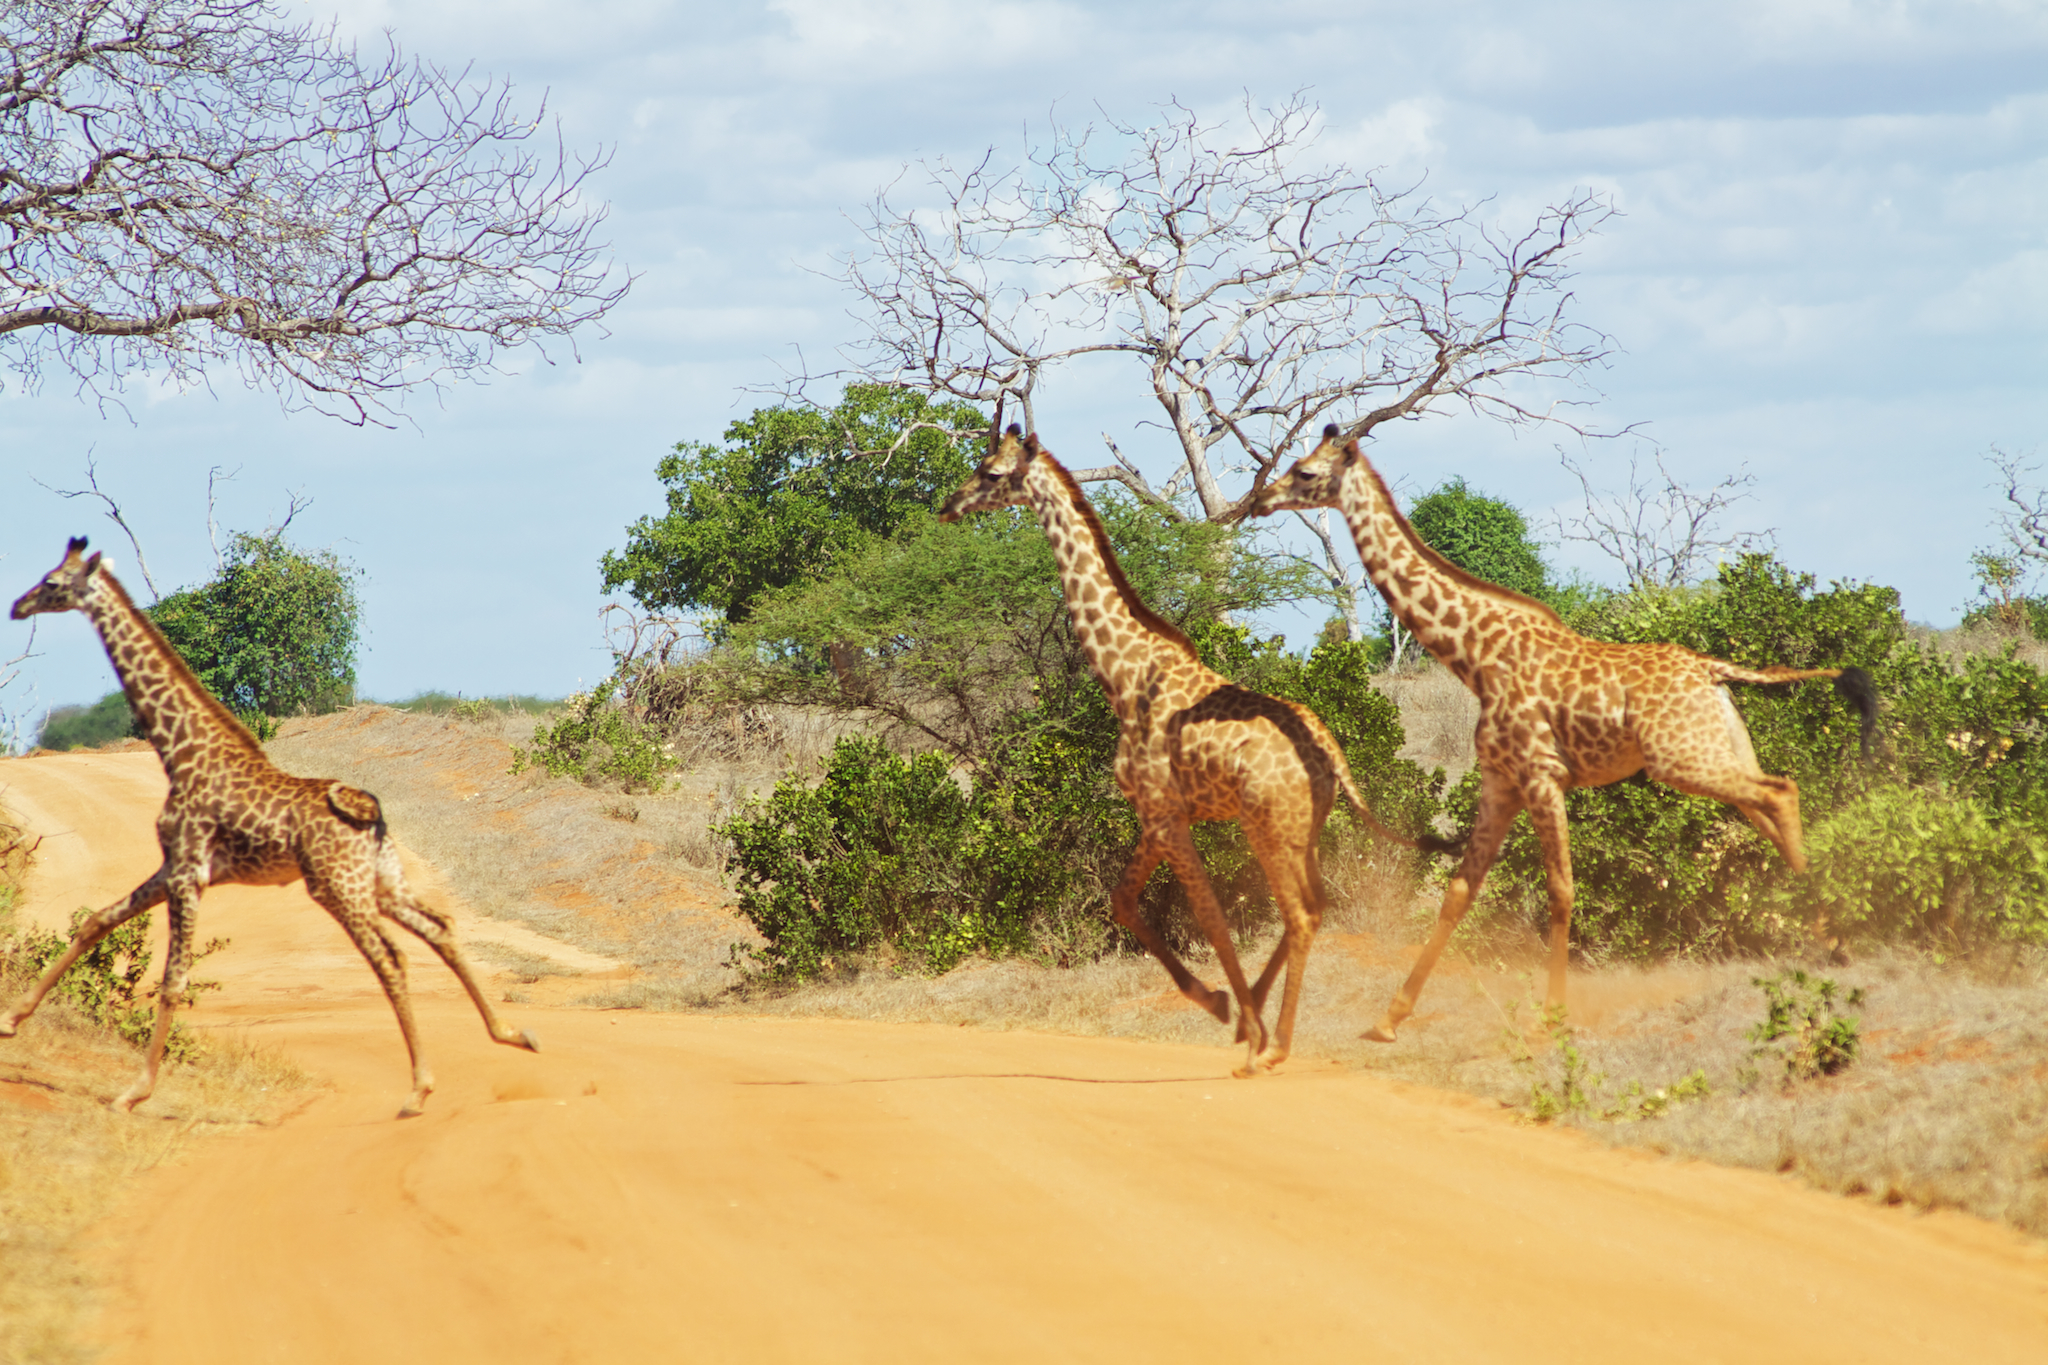 Why did the giraffe cross the road?